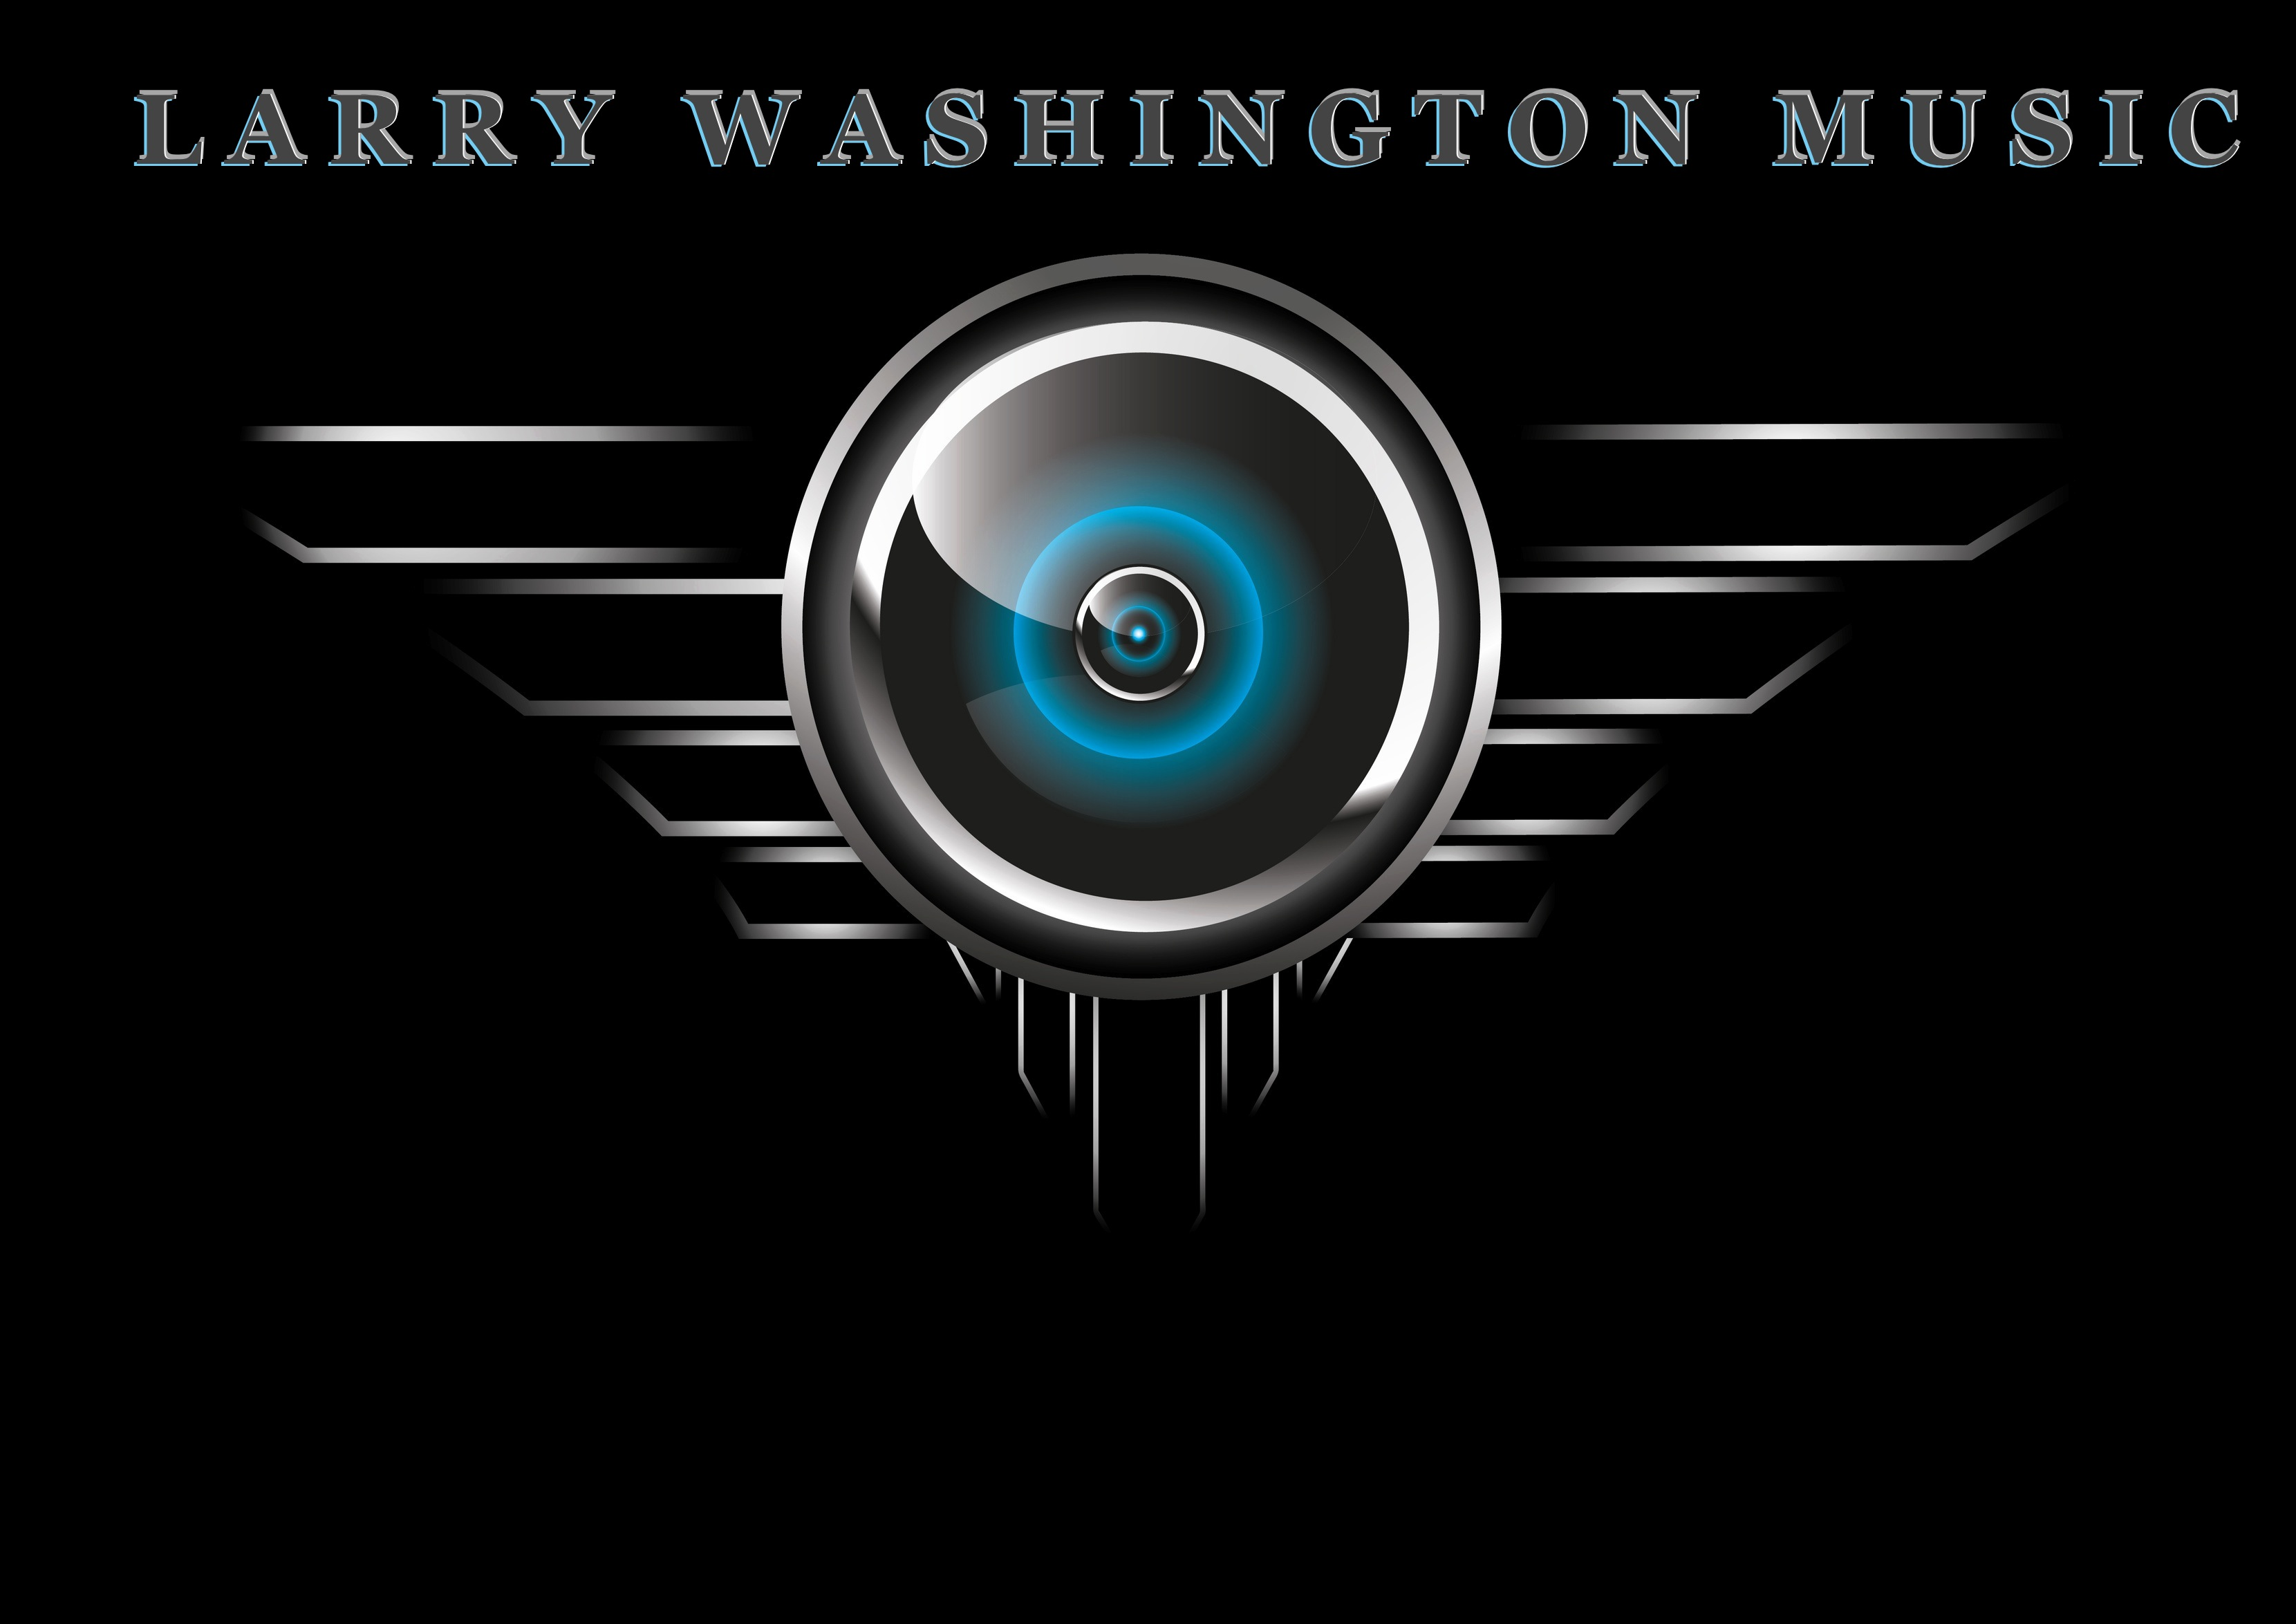 Larry Washington Music